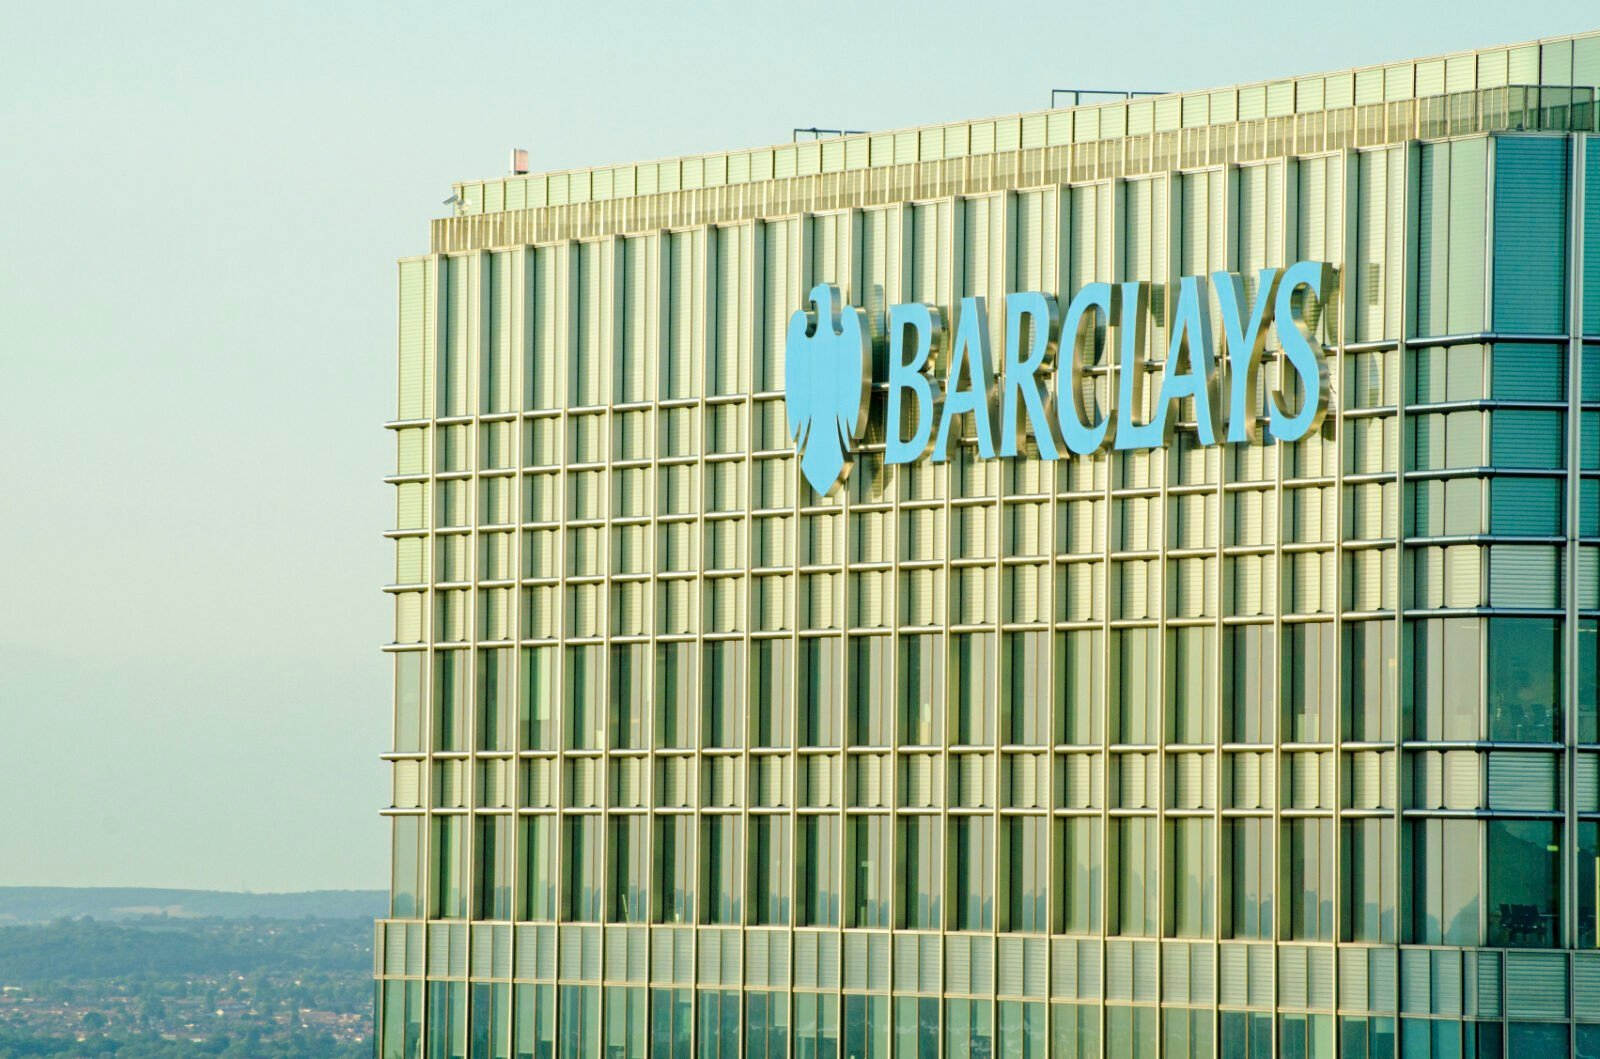 Barclays Office Building